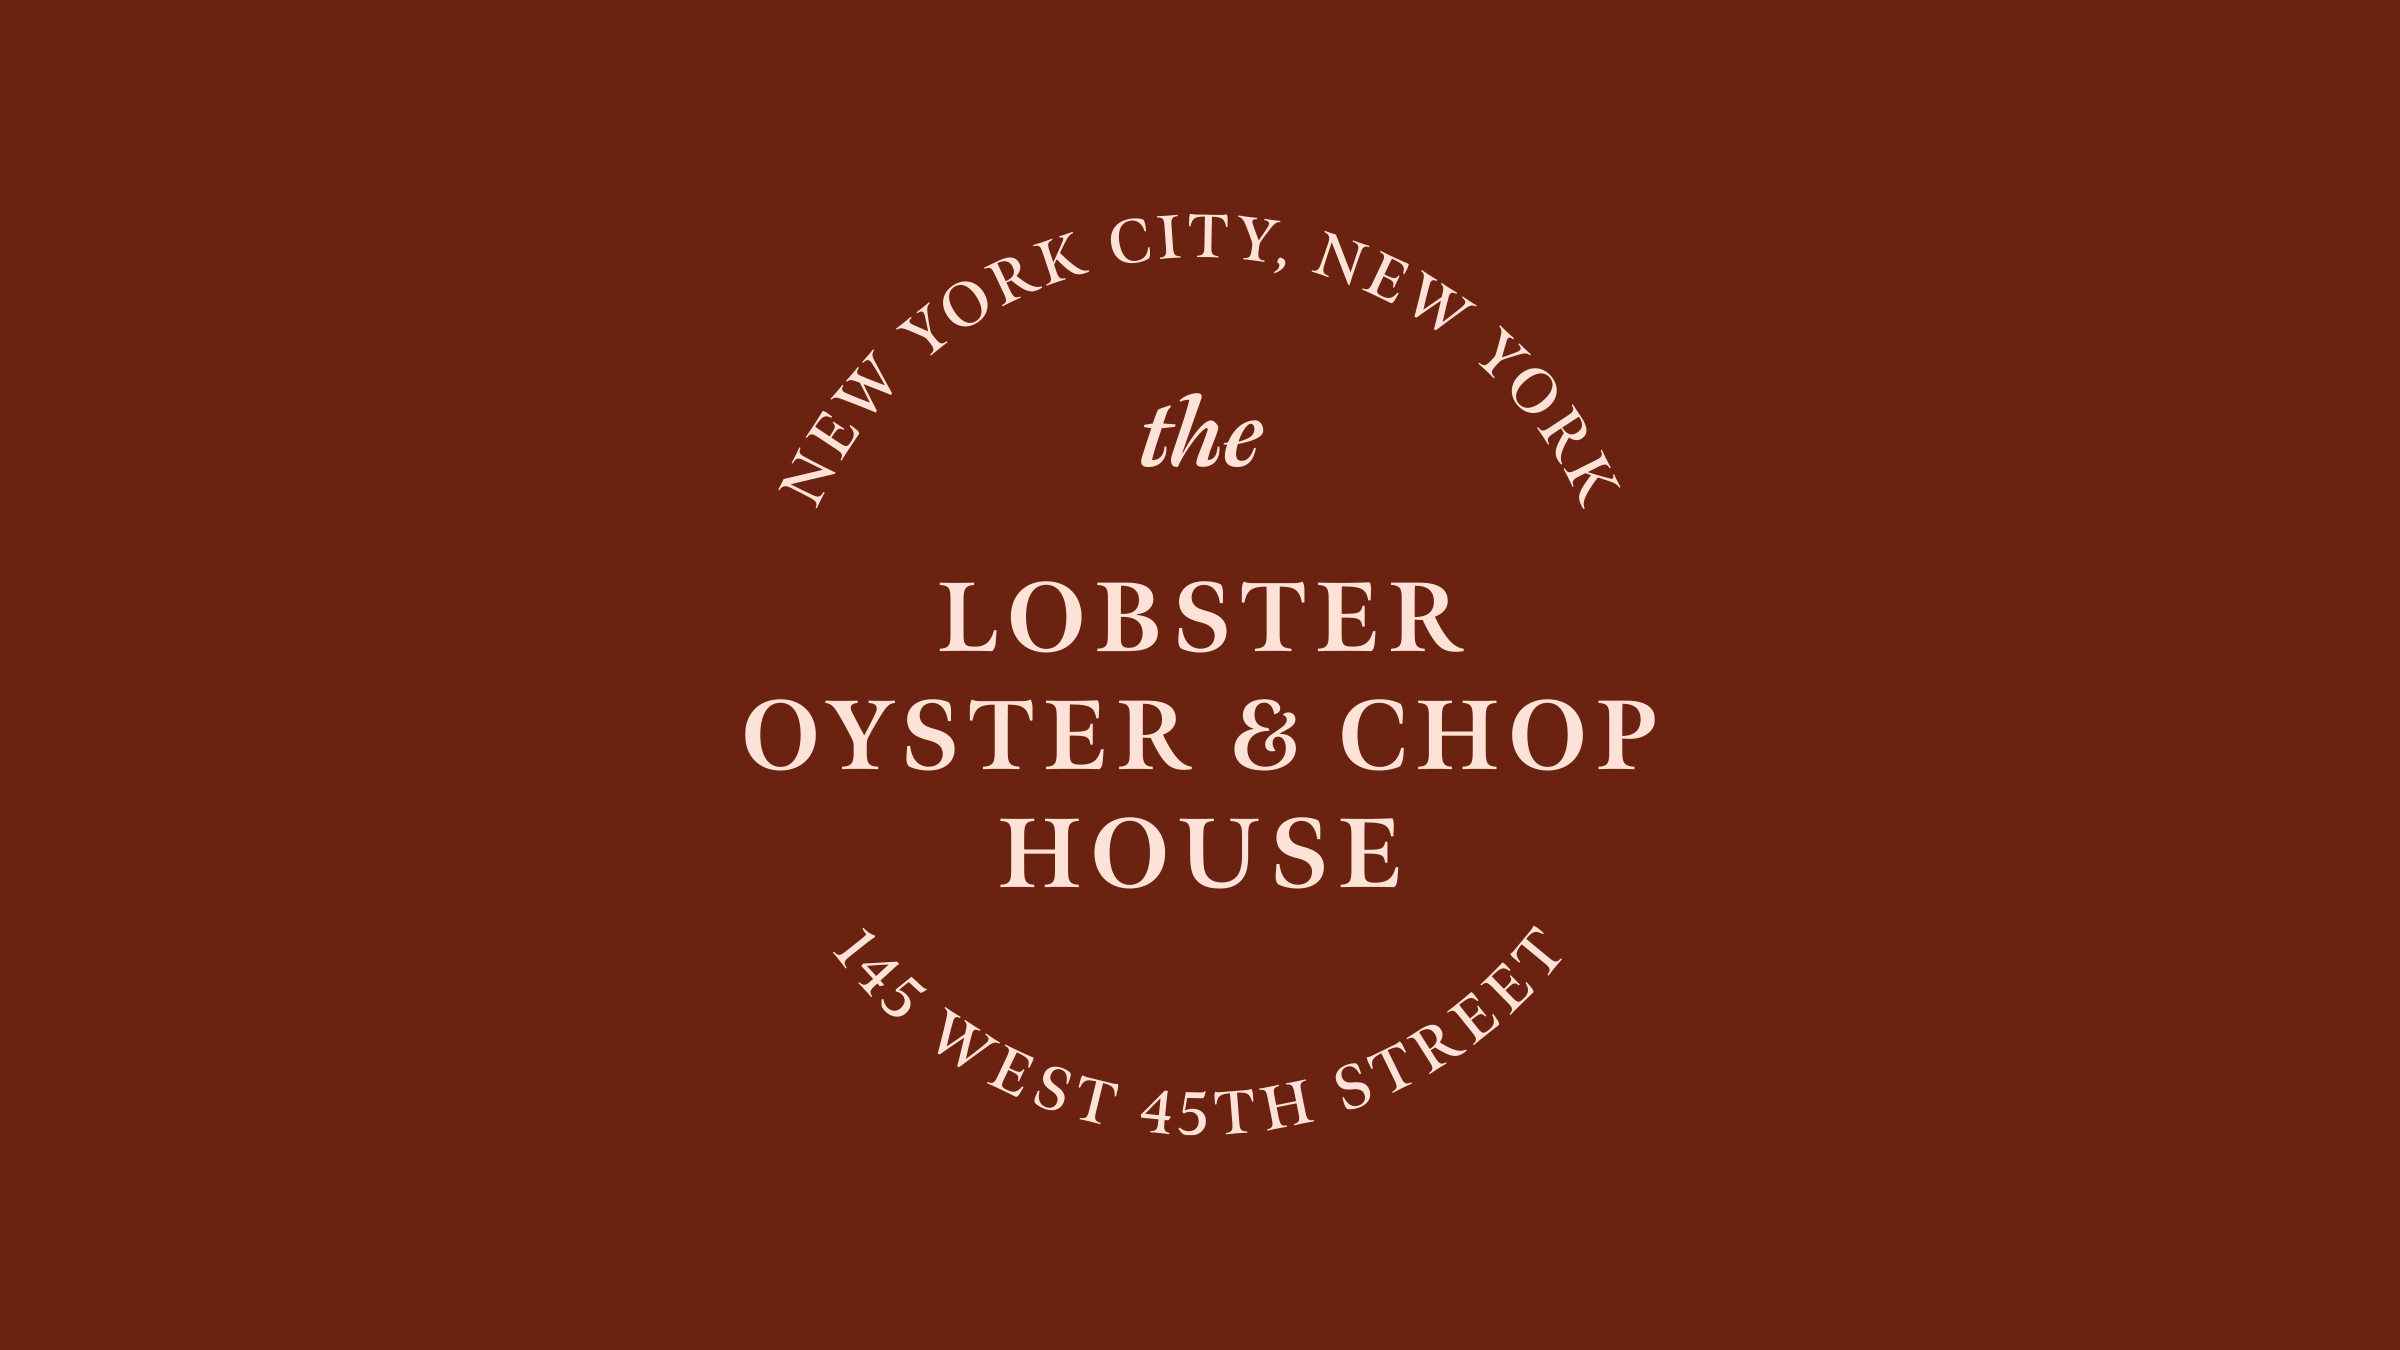 The Lobster Oyster & Chop House brand logo cream on brown